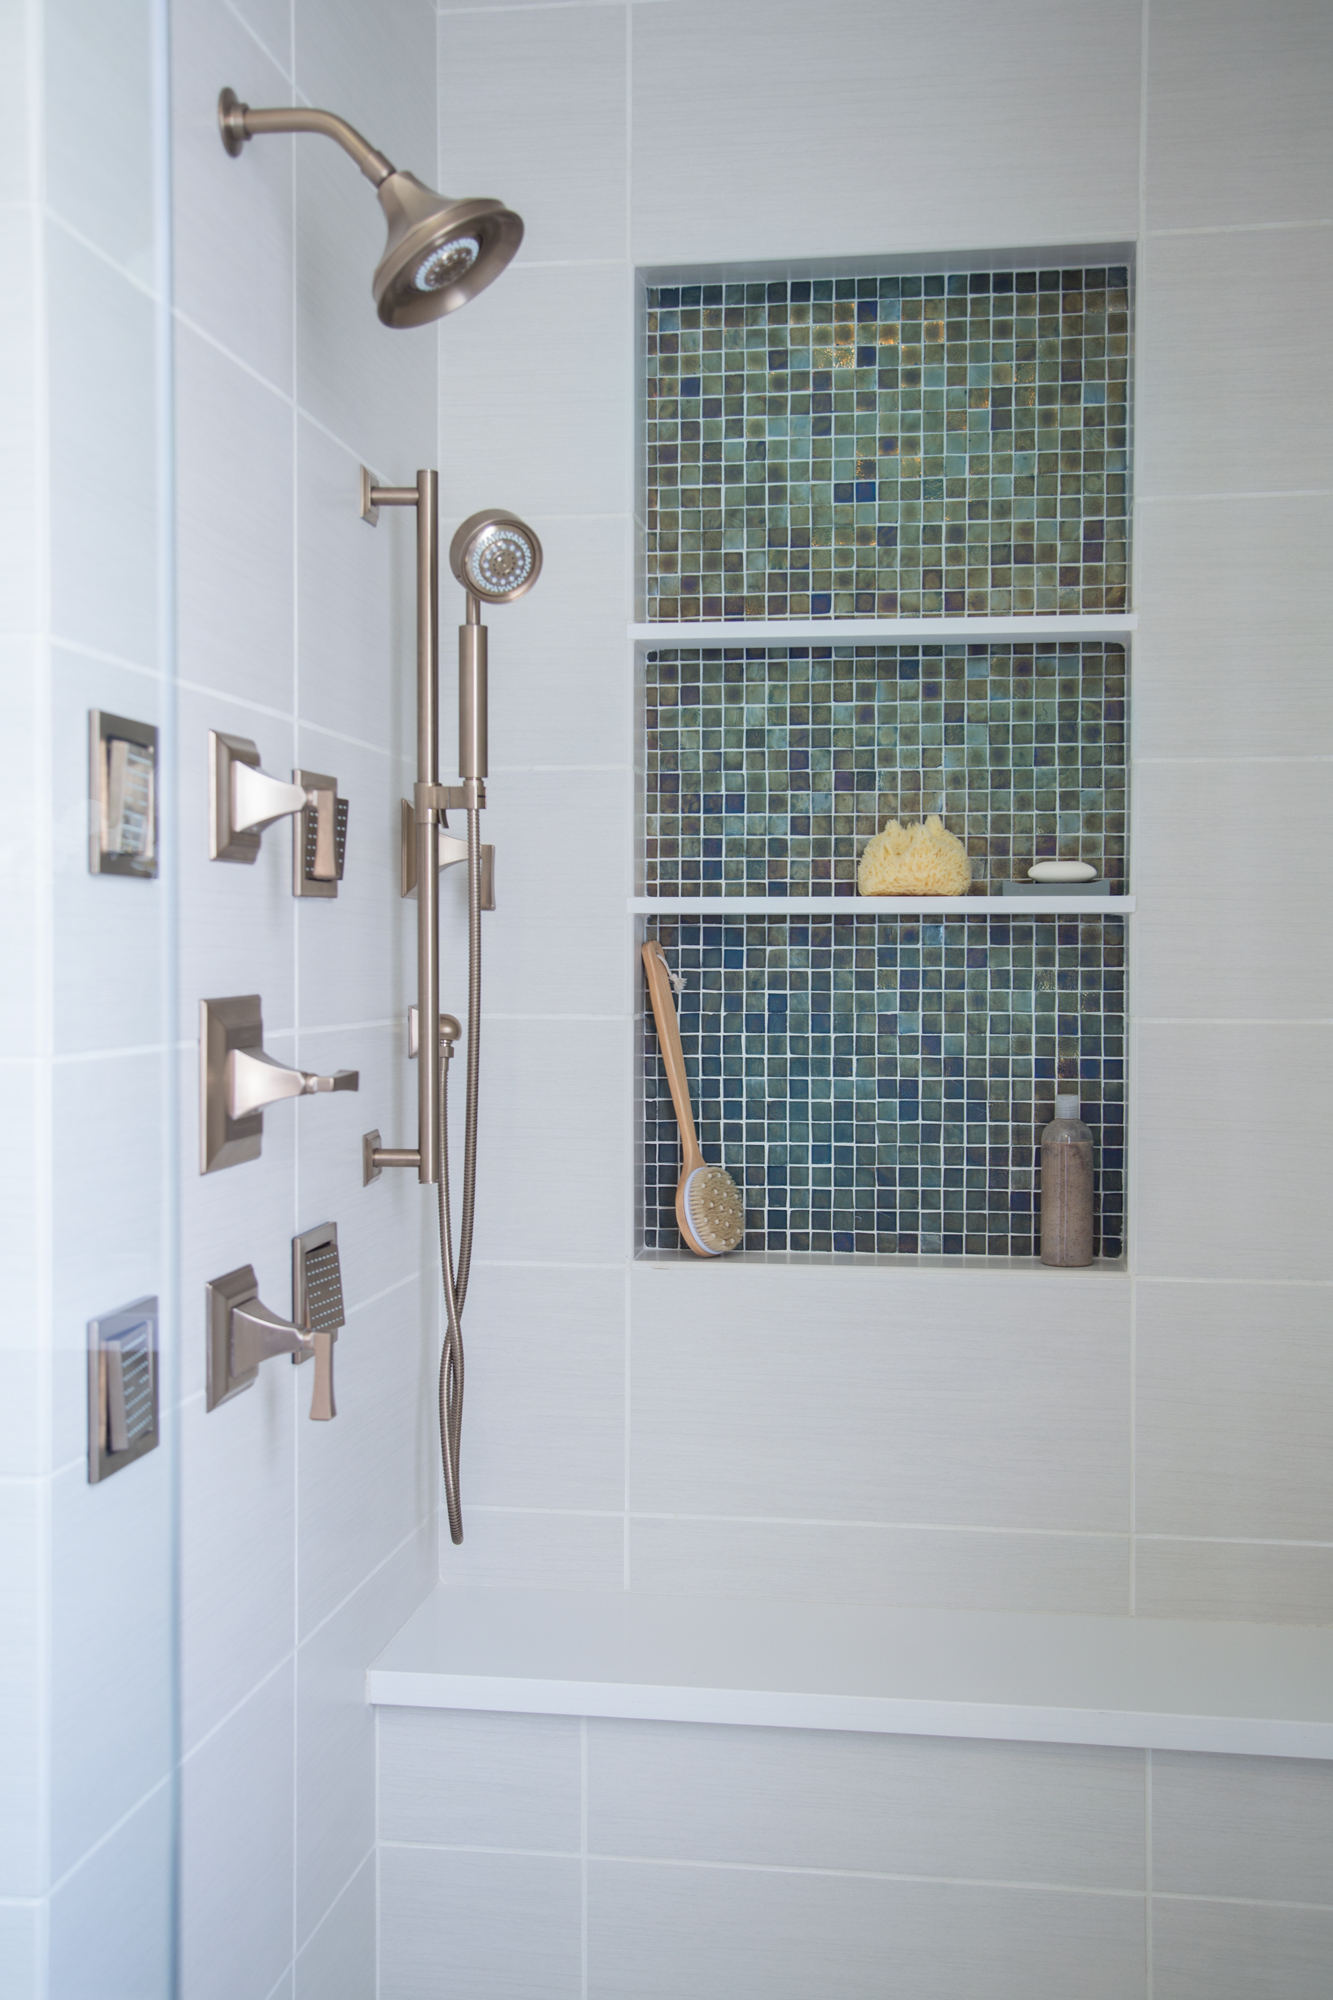 Shower stall with several controls for multiple showering options - Designer: Carla Aston #showerstall #bathroomdesign #shampooniche #showertile